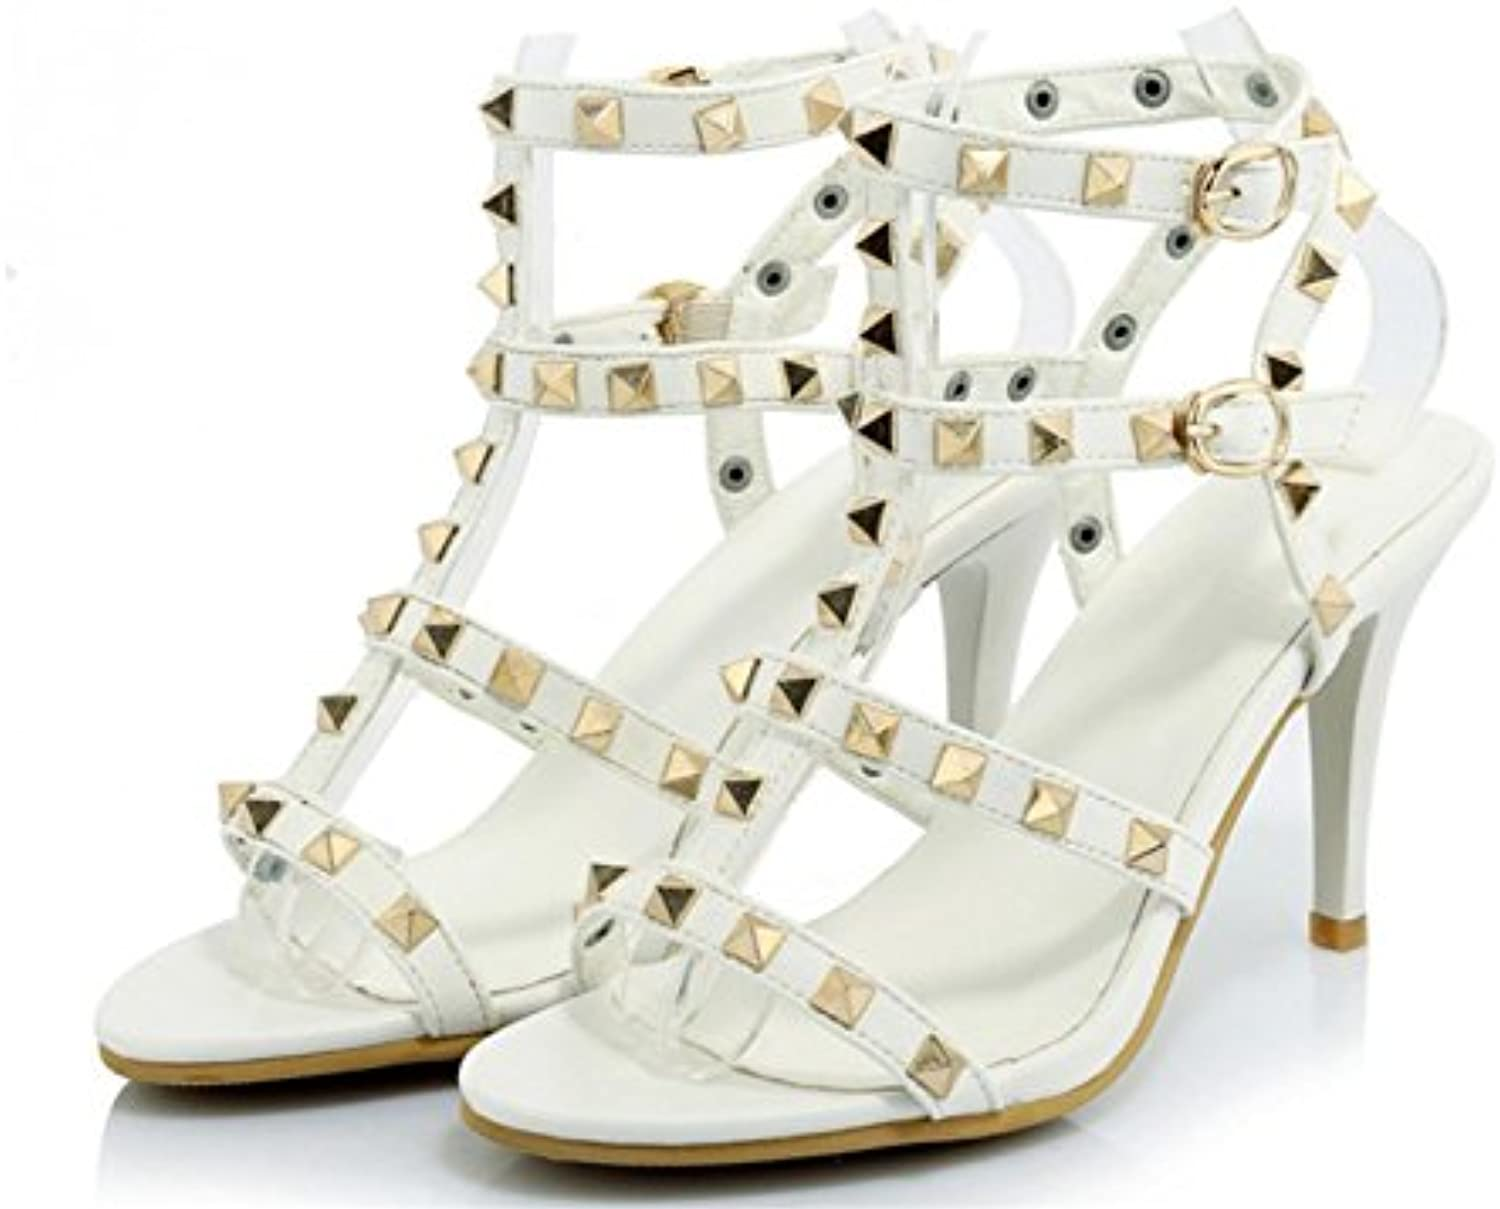 7f46f9c71 Kitzen Women Sandals High Heel Sandals Rivet Rivet Rivet Fine With Buckle  Shoes Fashion Party Banquet